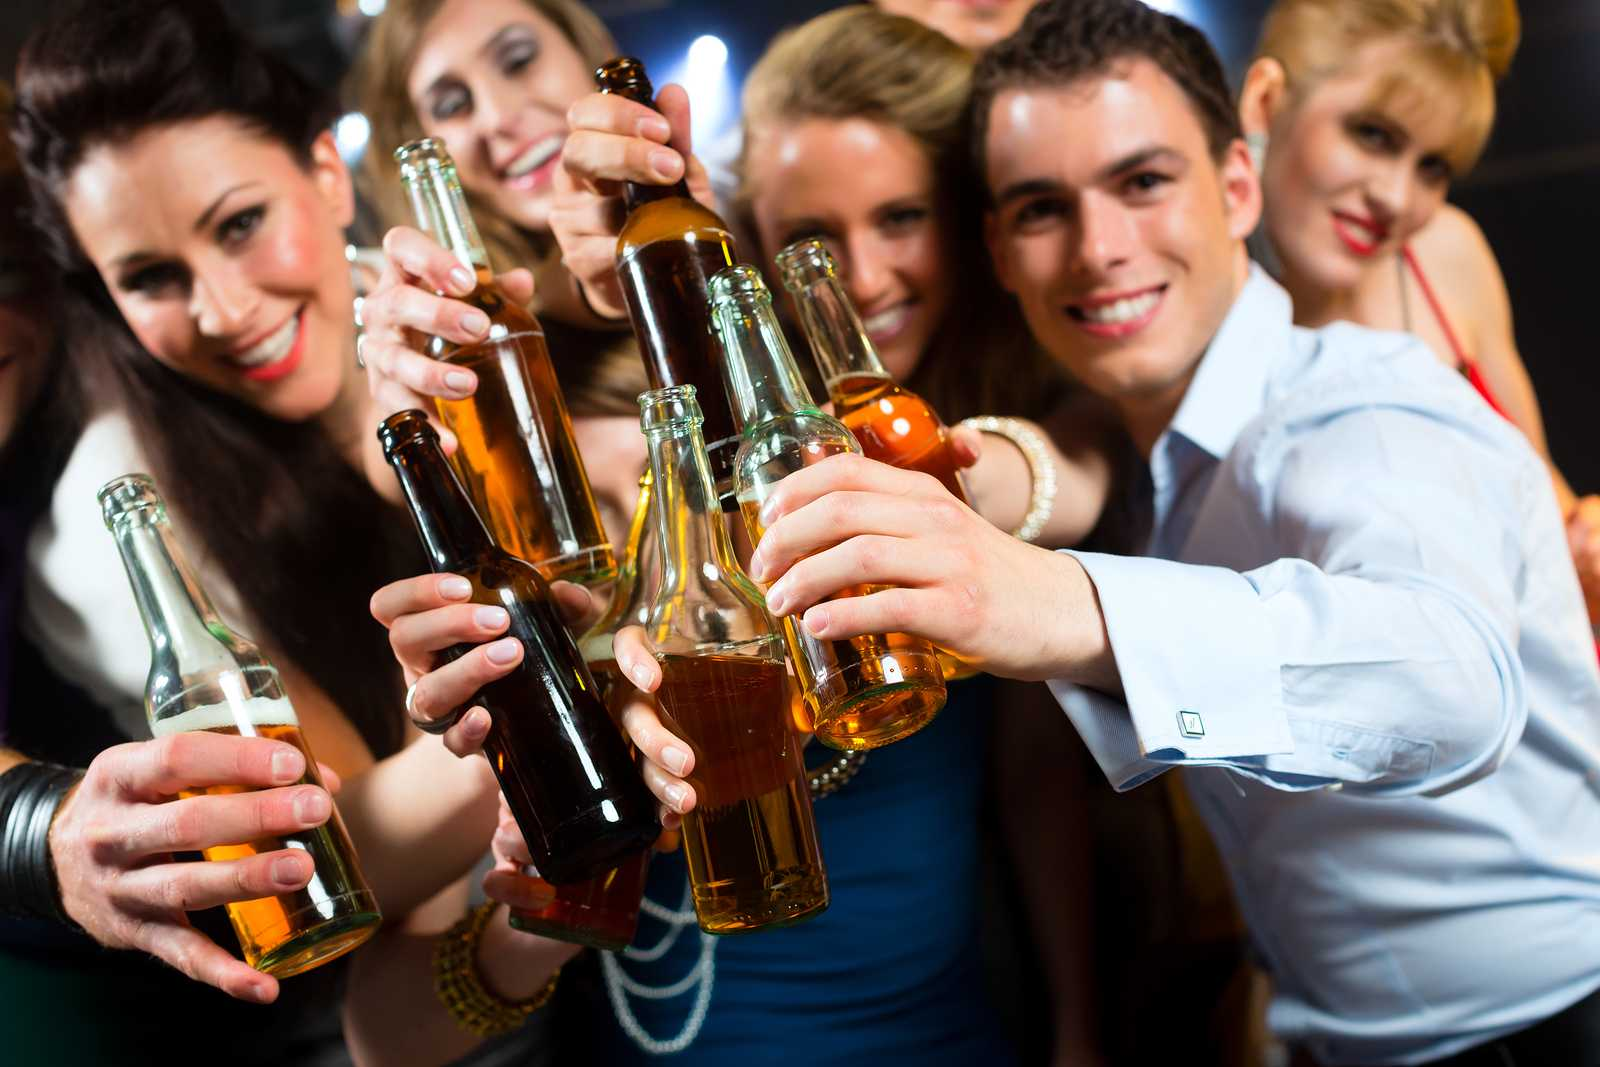 parties-events-24062